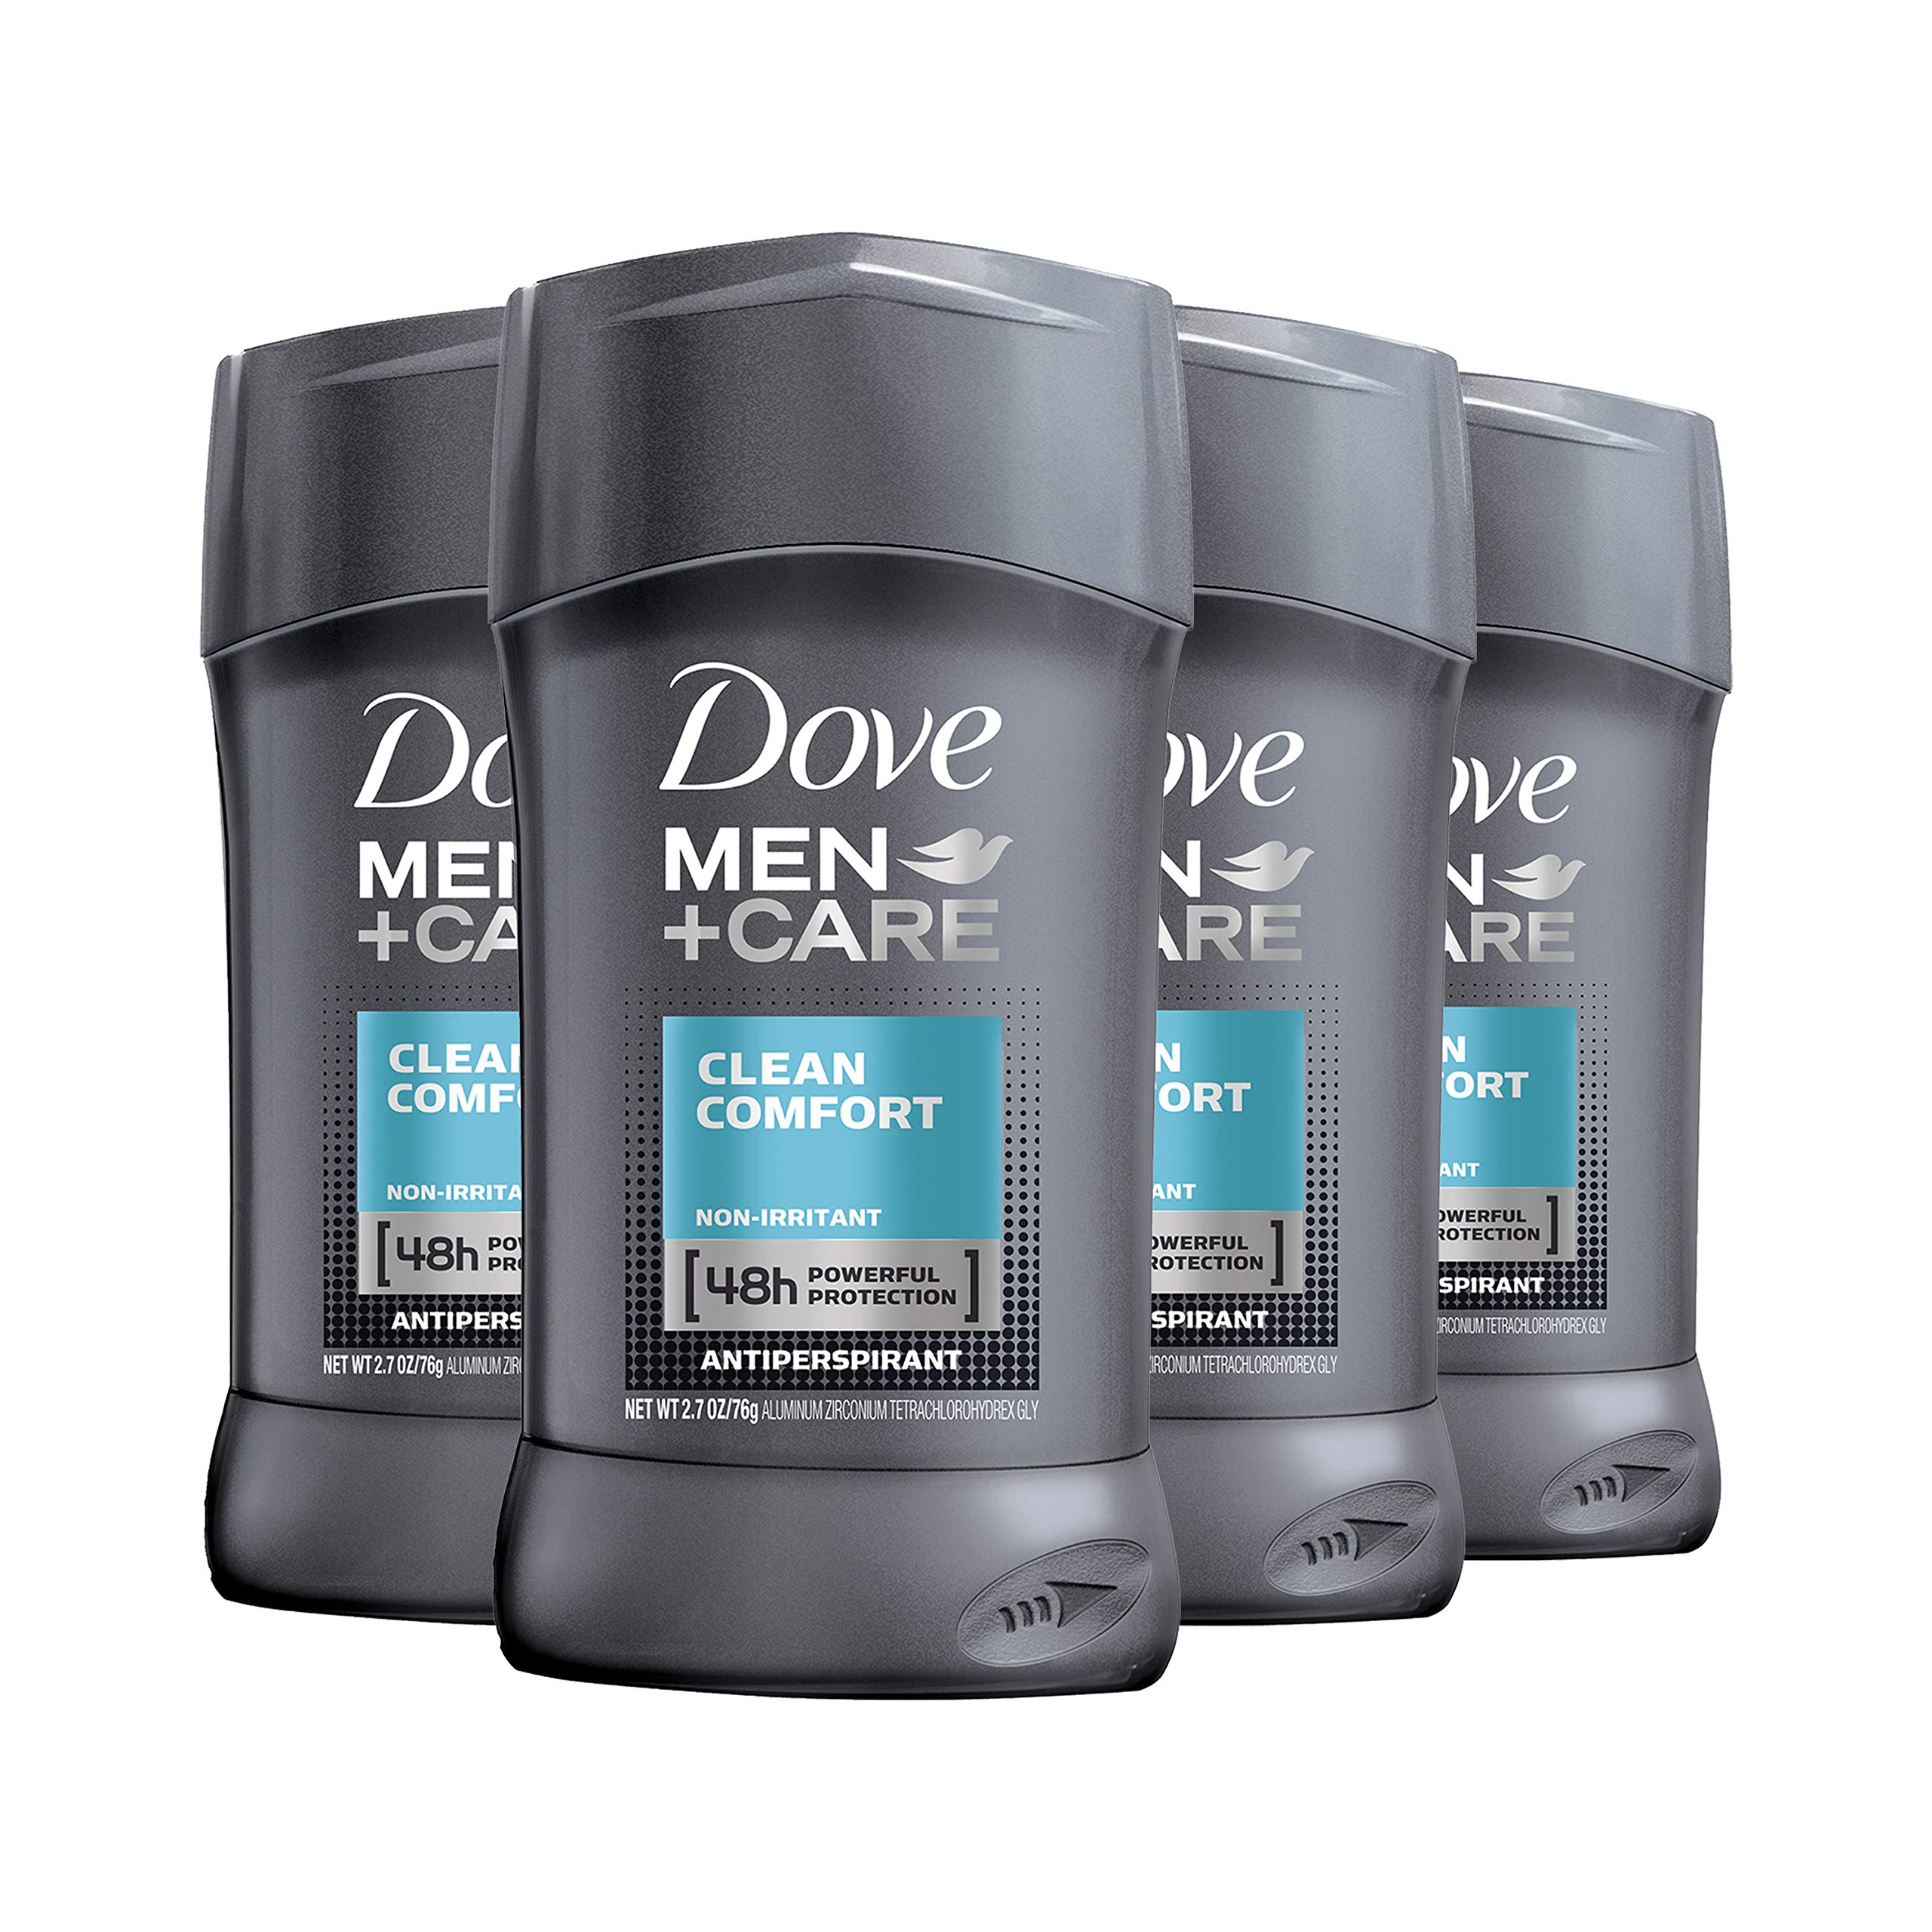 Dove Men+Care Antiperspirant Deodorant Stick Clean Comfort 2.7 oz 4 count